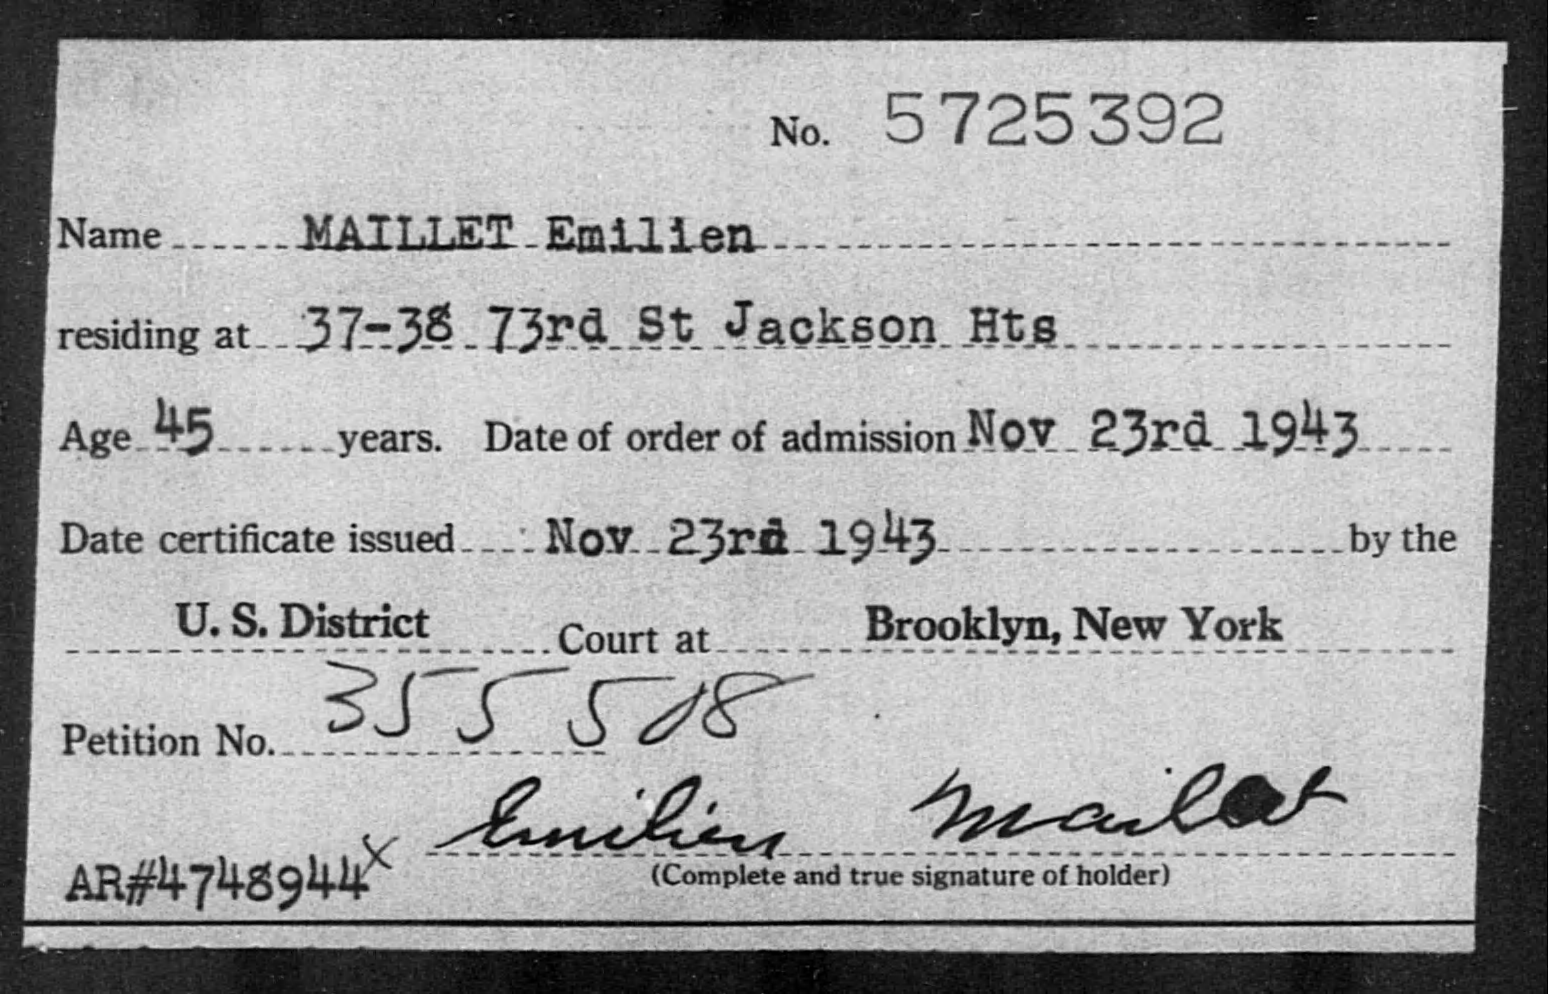 Maillet, Emilien - Born: [BLANK], Naturalized: 1943